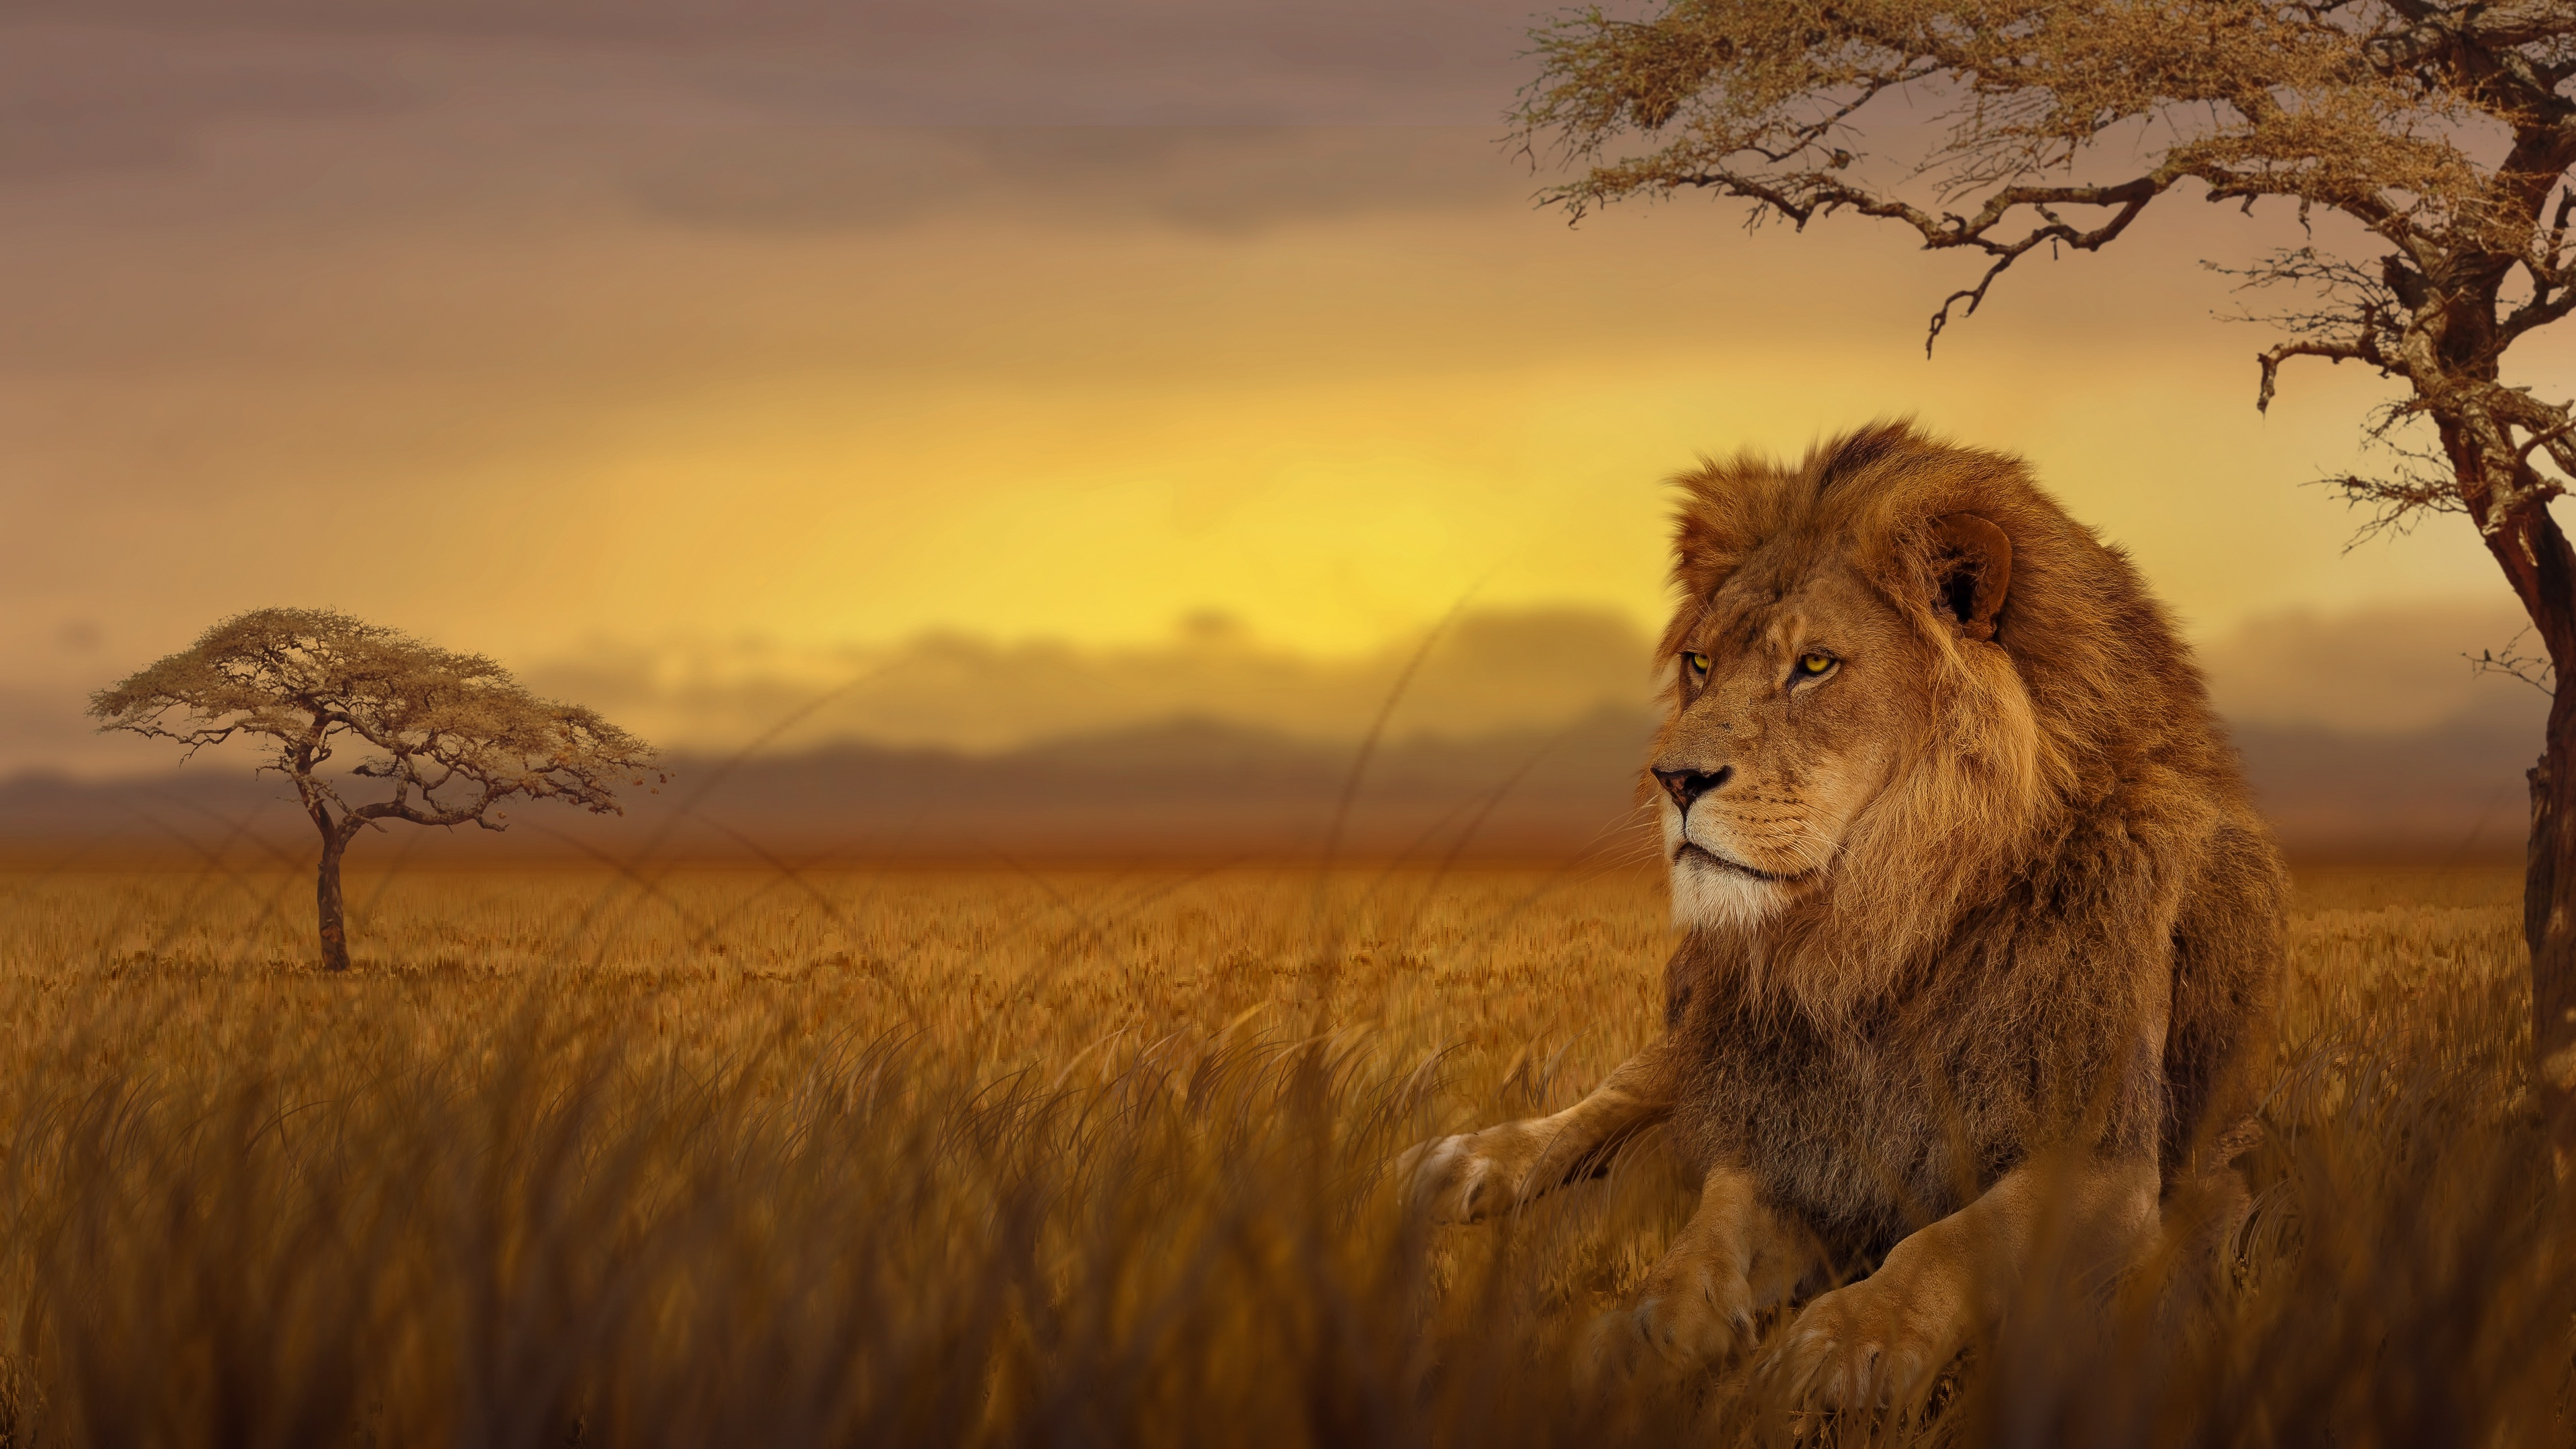 lion forest 4k 1542239116 - Lion Forest 4k - lion wallpapers, hd-wallpapers, forest wallpapers, animals wallpapers, 4k-wallpapers